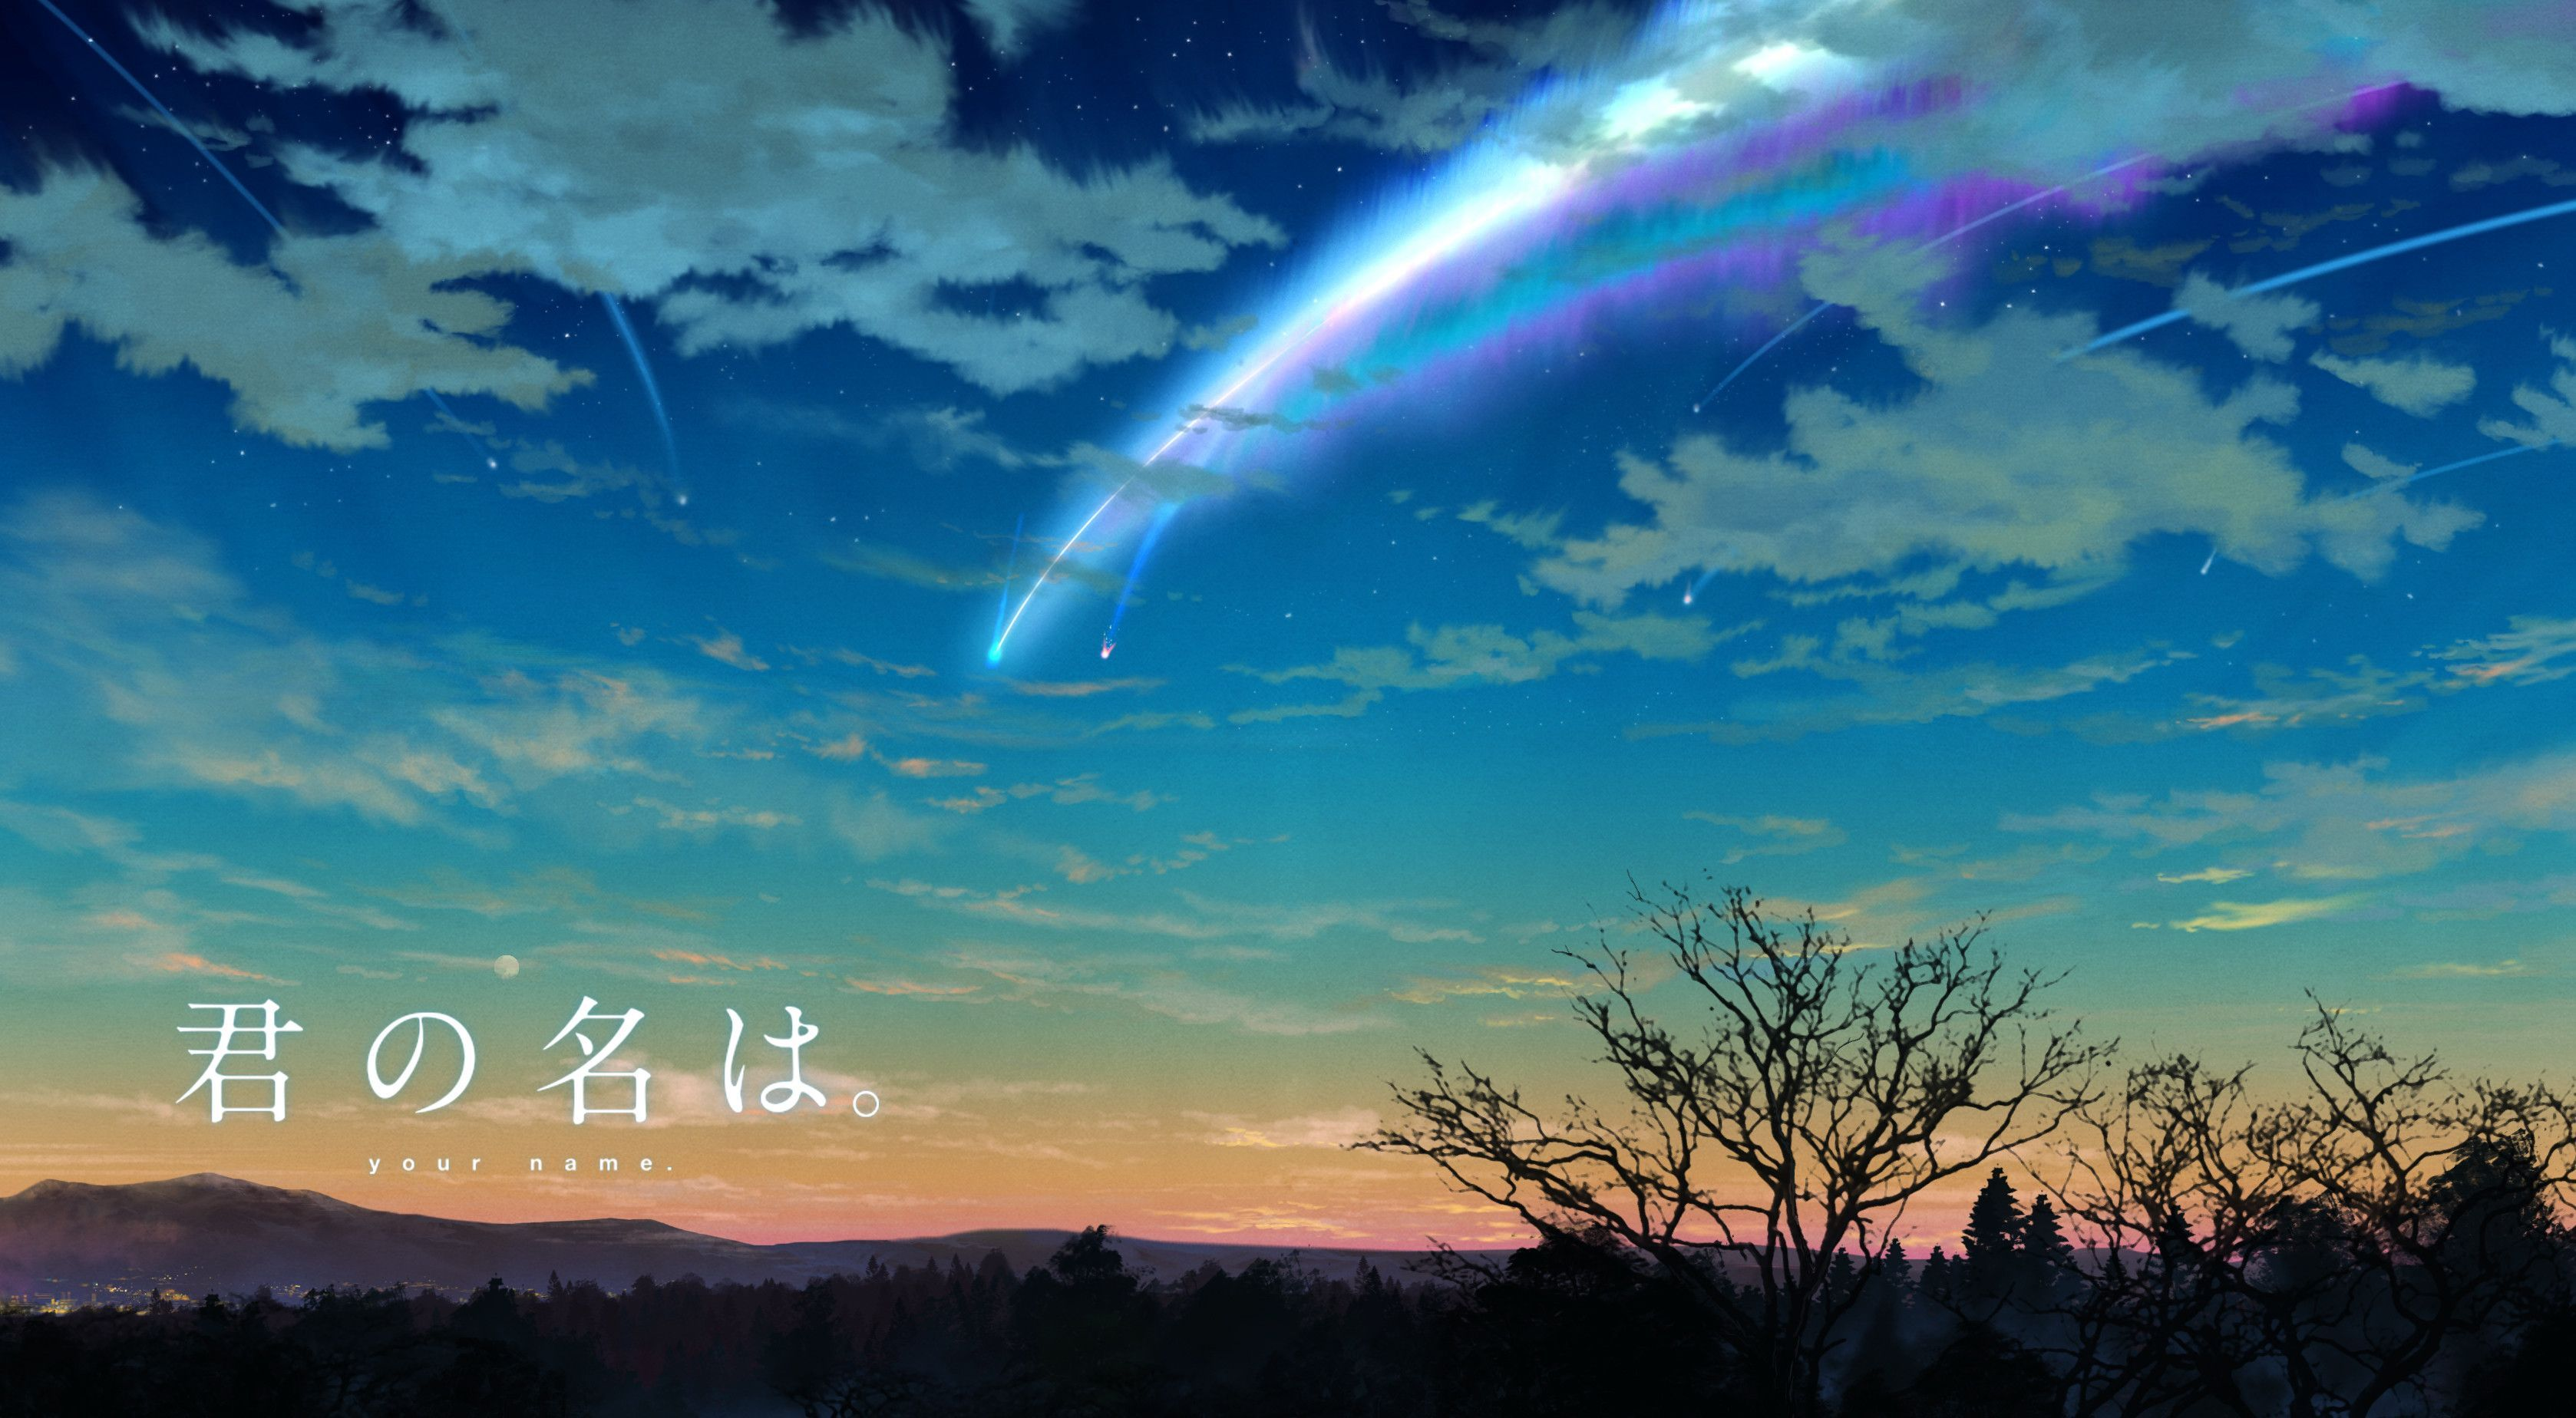 Best Hd Wallpapers For Pc Download Free 4k Full Hd Wallpapers Background Images Name Wallpaper Kimi No Na Wa Wallpaper Your Name Wallpaper